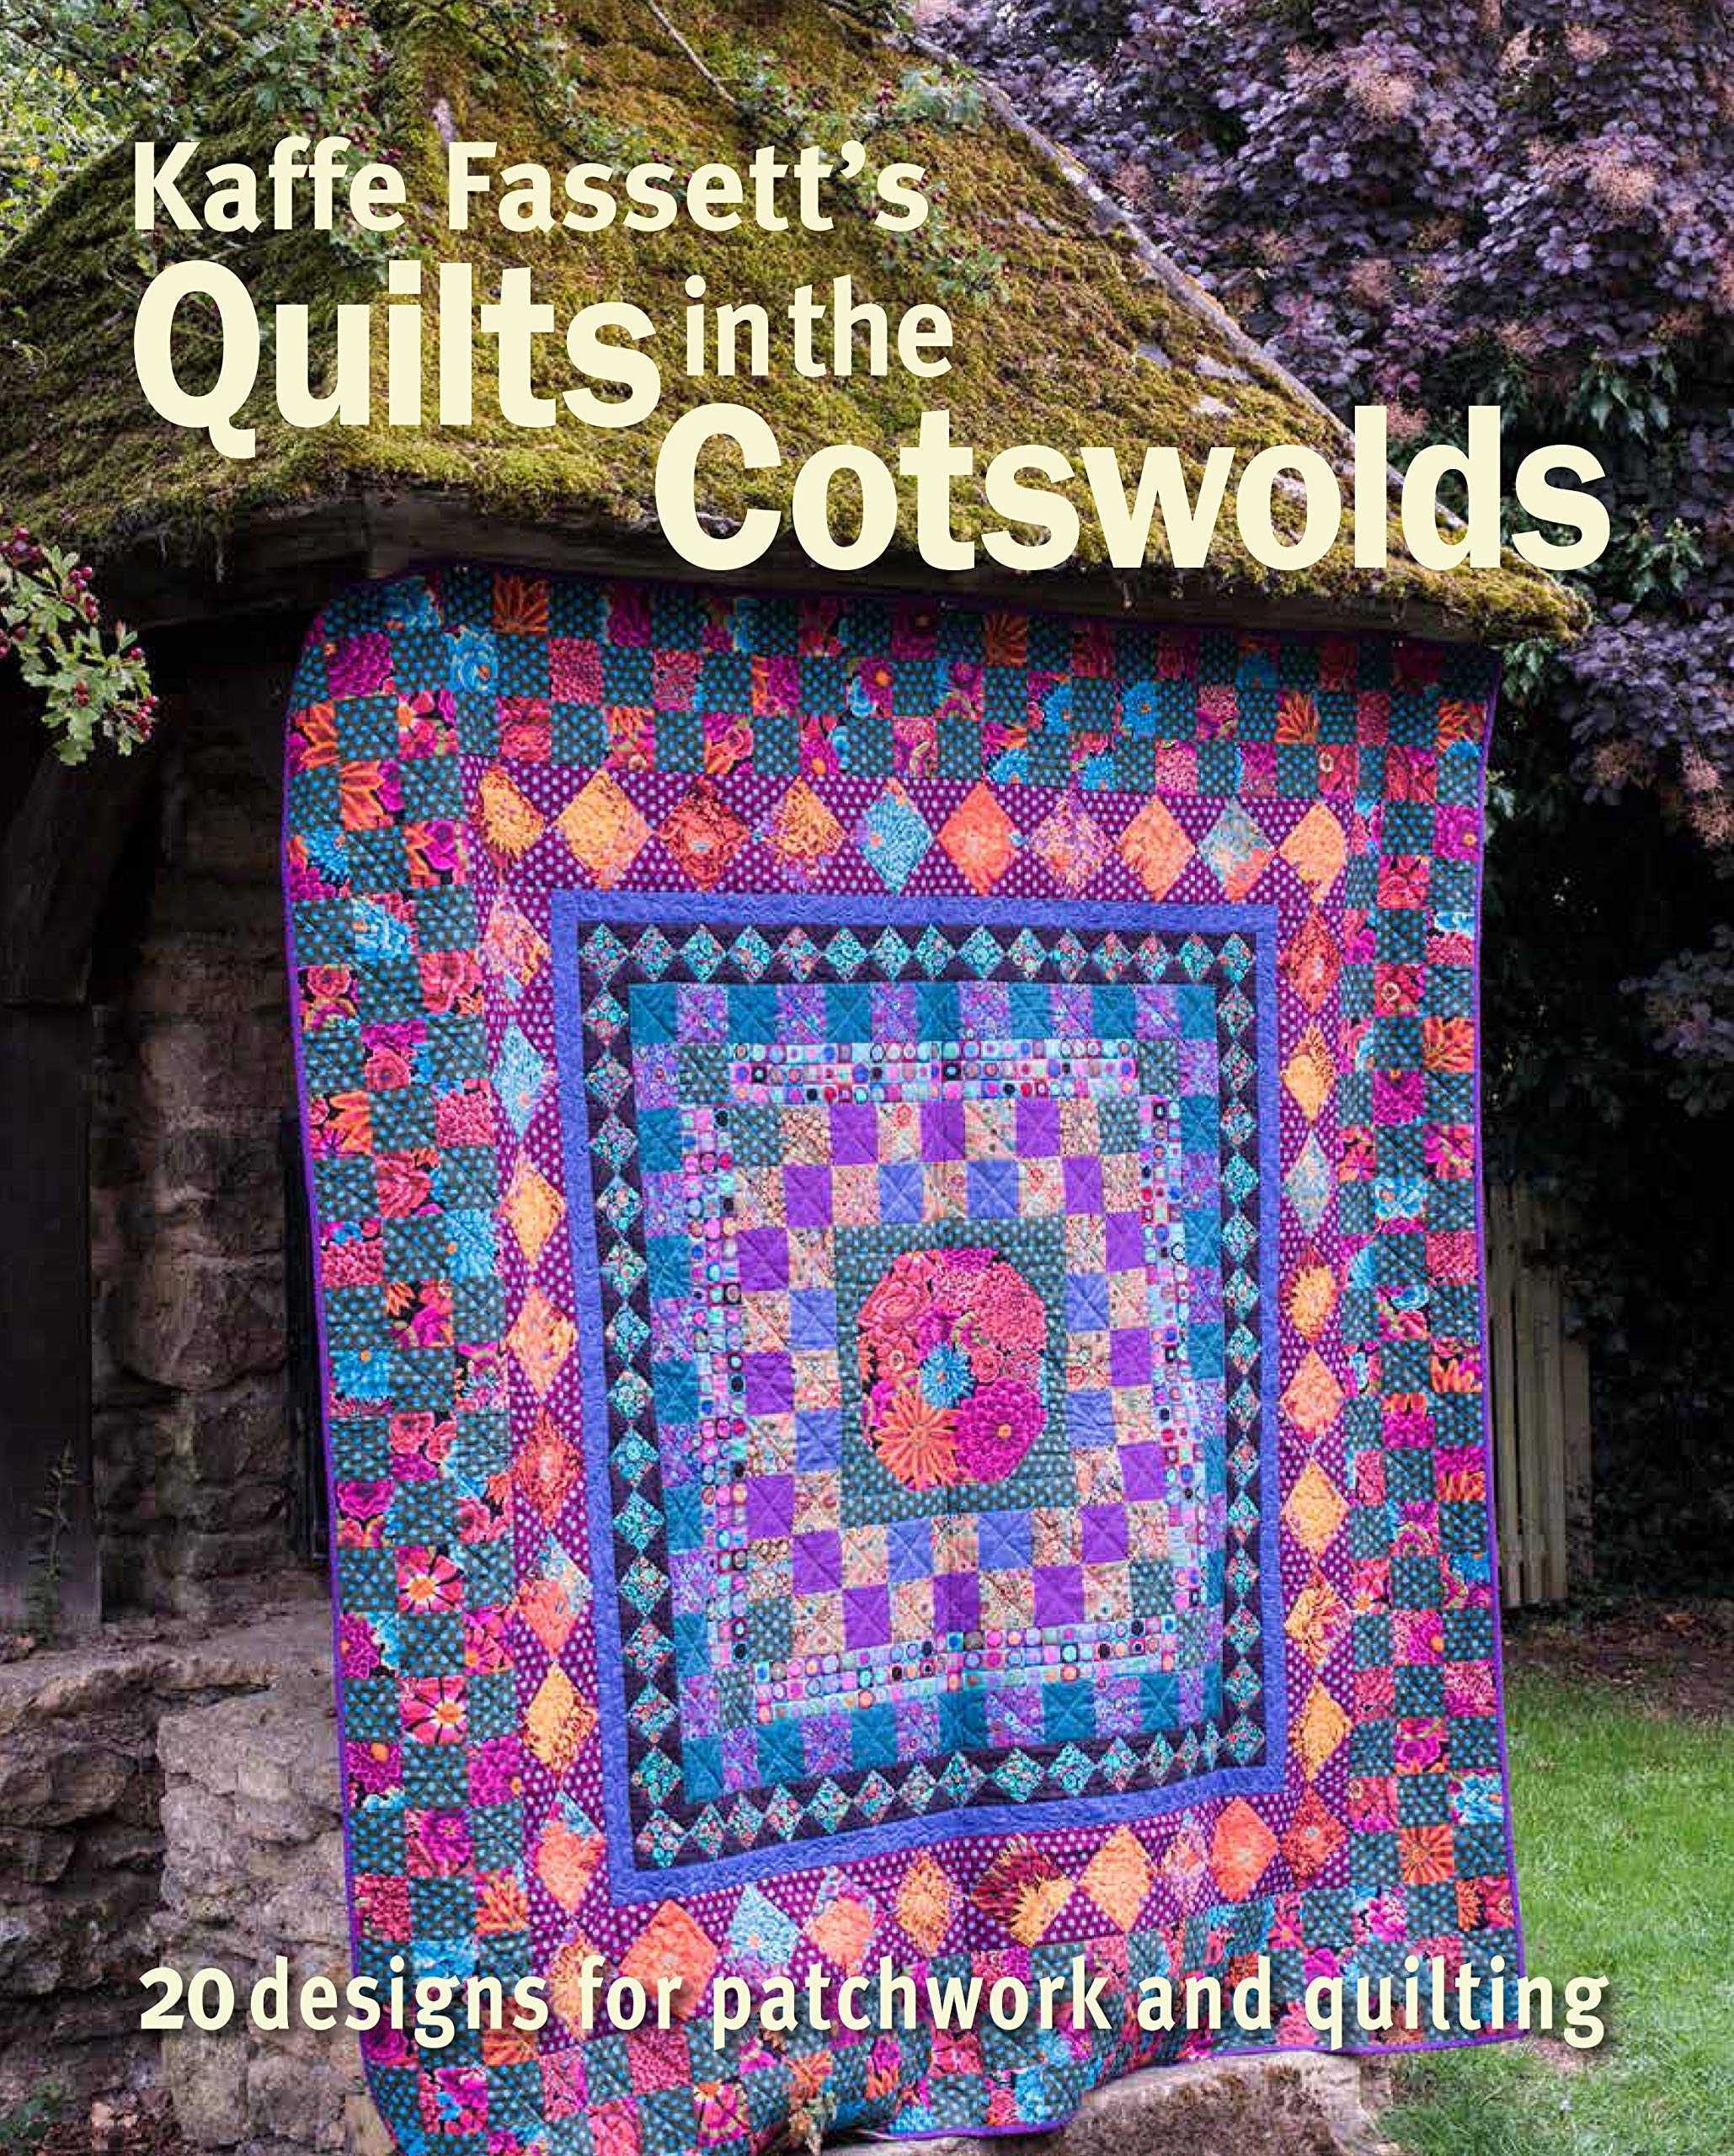 Kaffe Fassett's Quilts in the Cotswolds: Medallion Quilt Designs with Kaffe Fassett Fabrics by Taunton Press